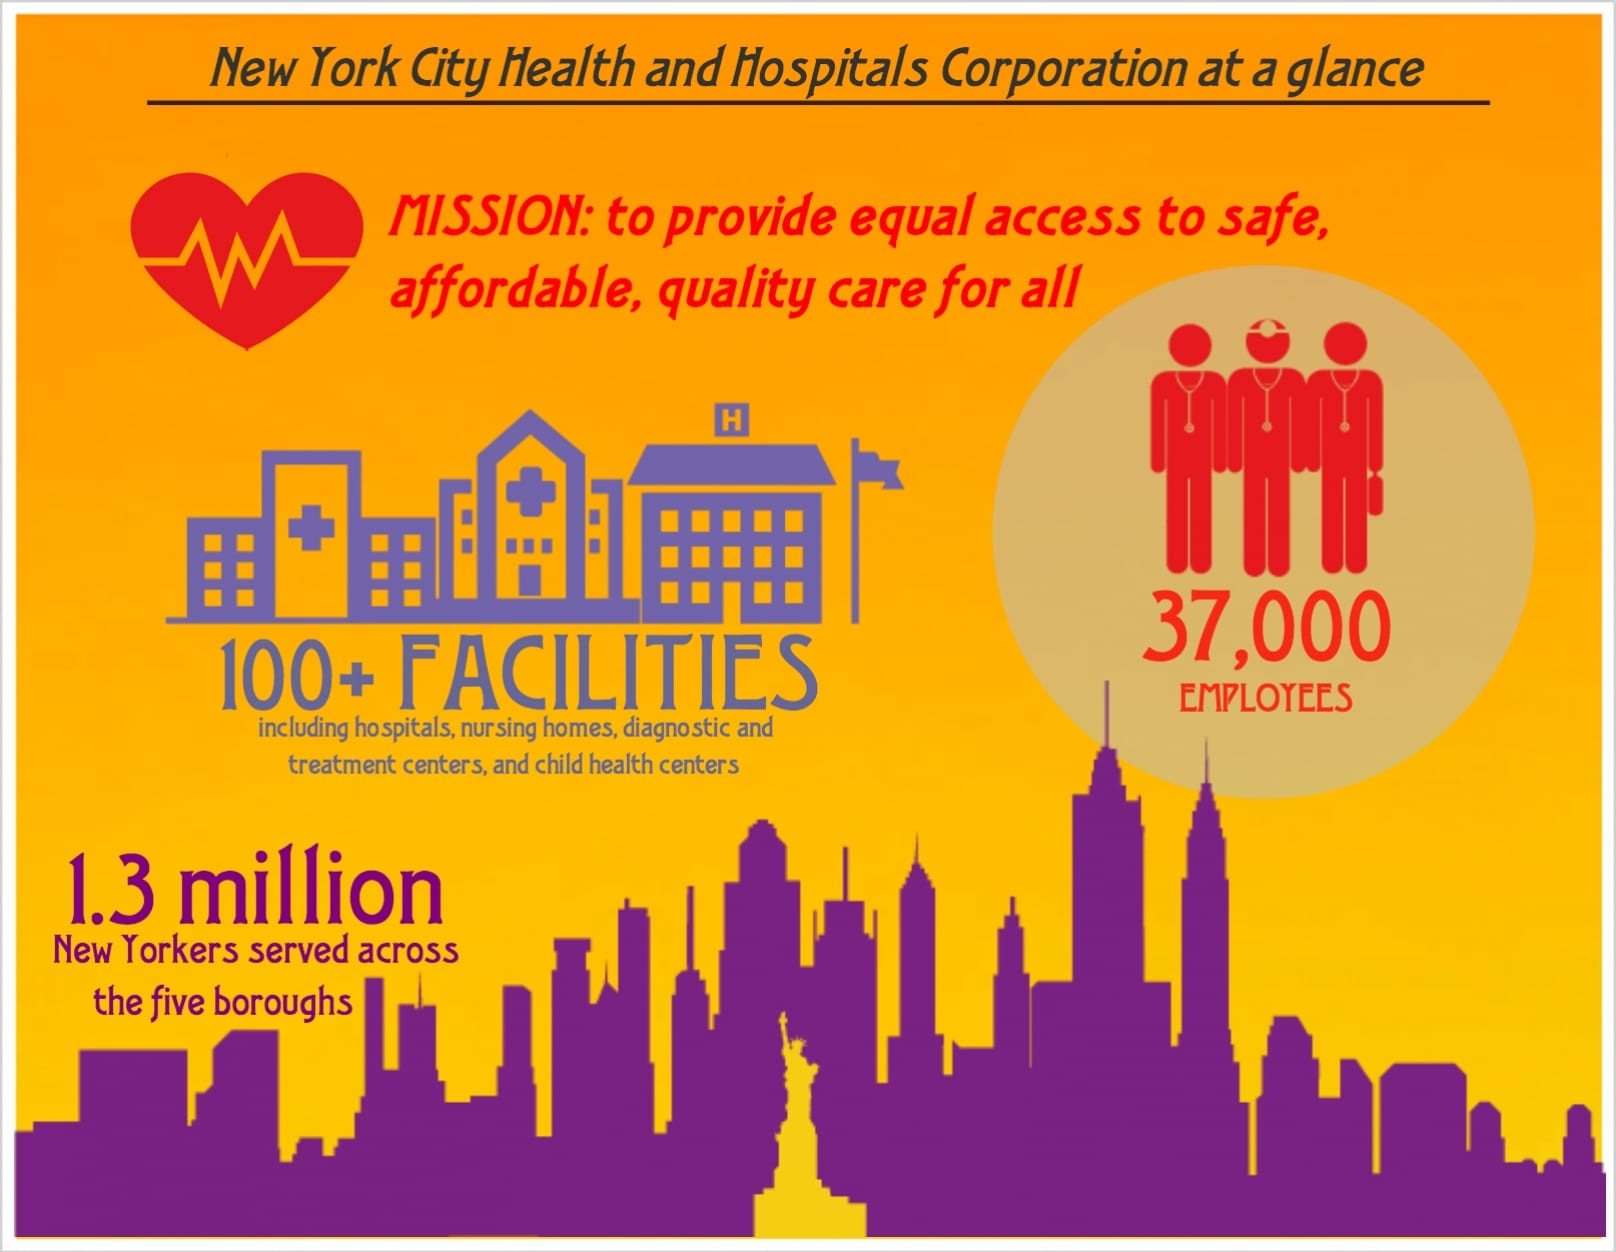 New York City public hospitals lean healthcare